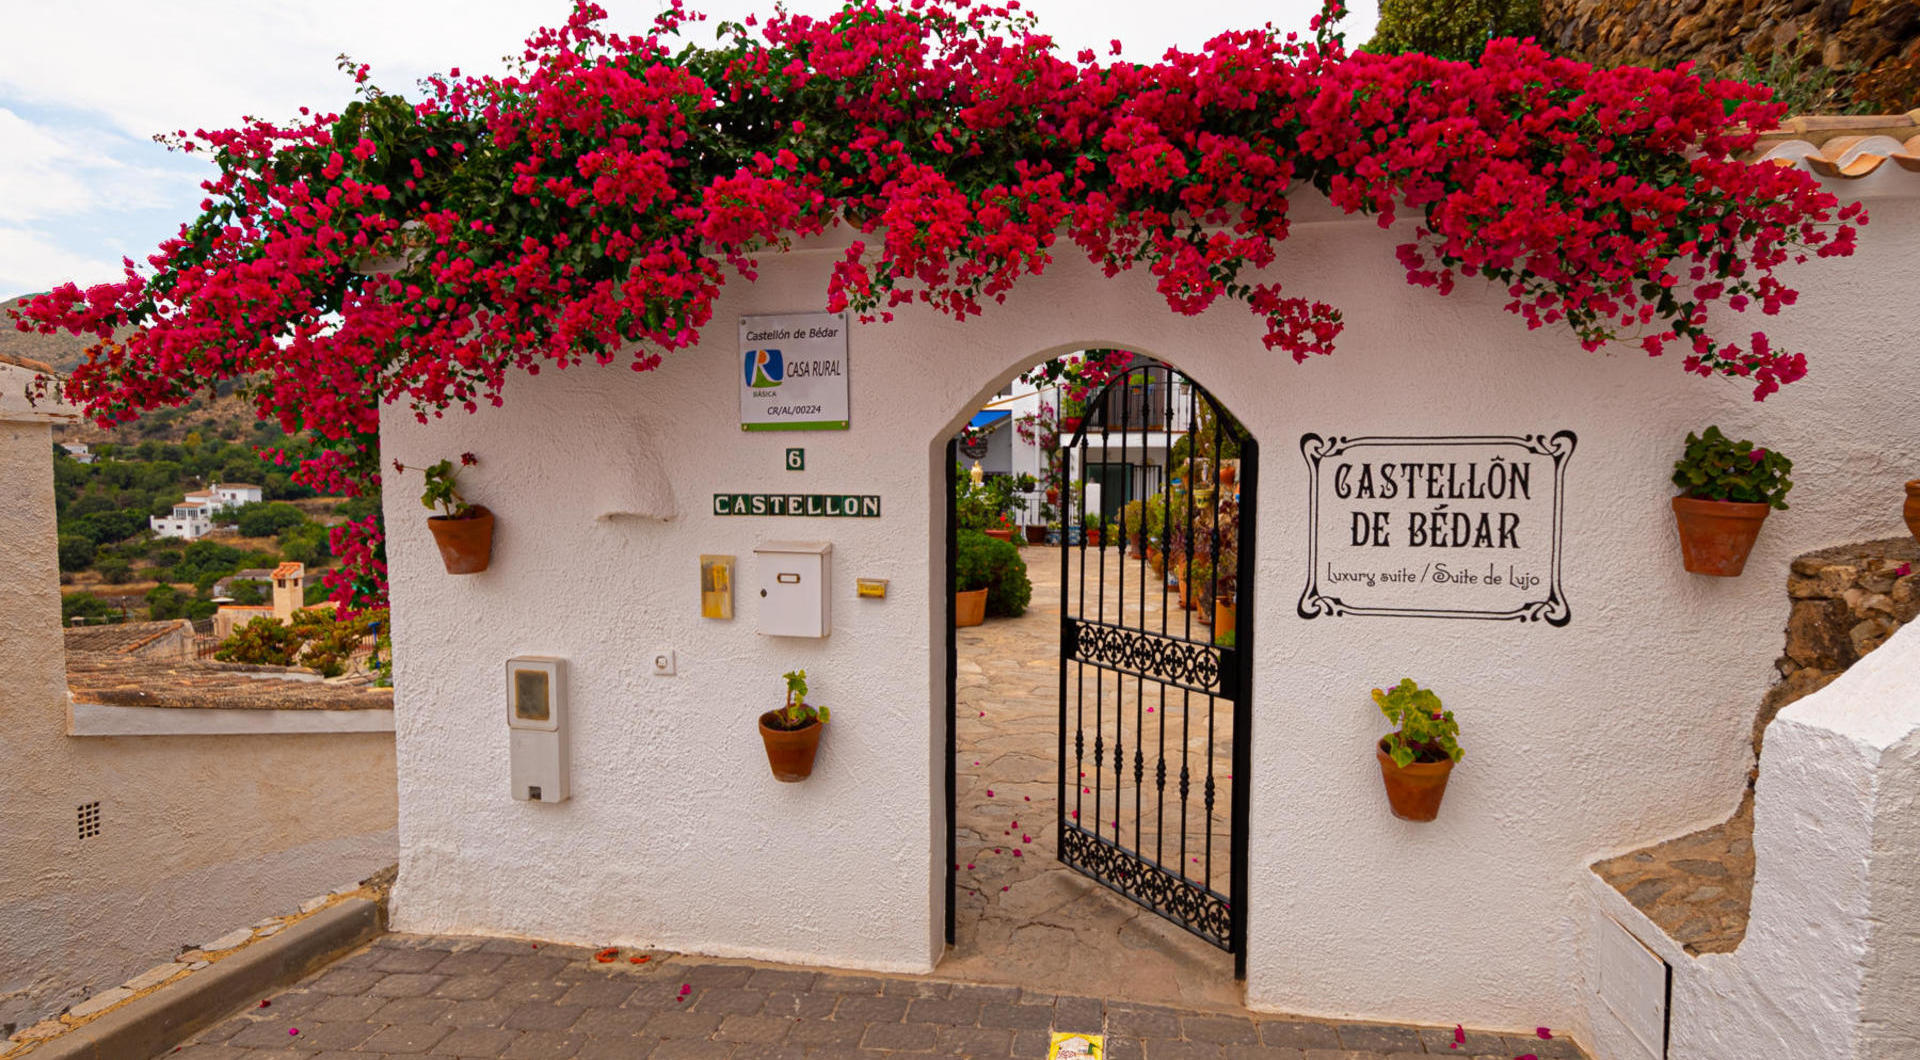 Castellon de Bédar Guest House and Bespoke Jewellery by Clare in Bédar, Almería, Spain